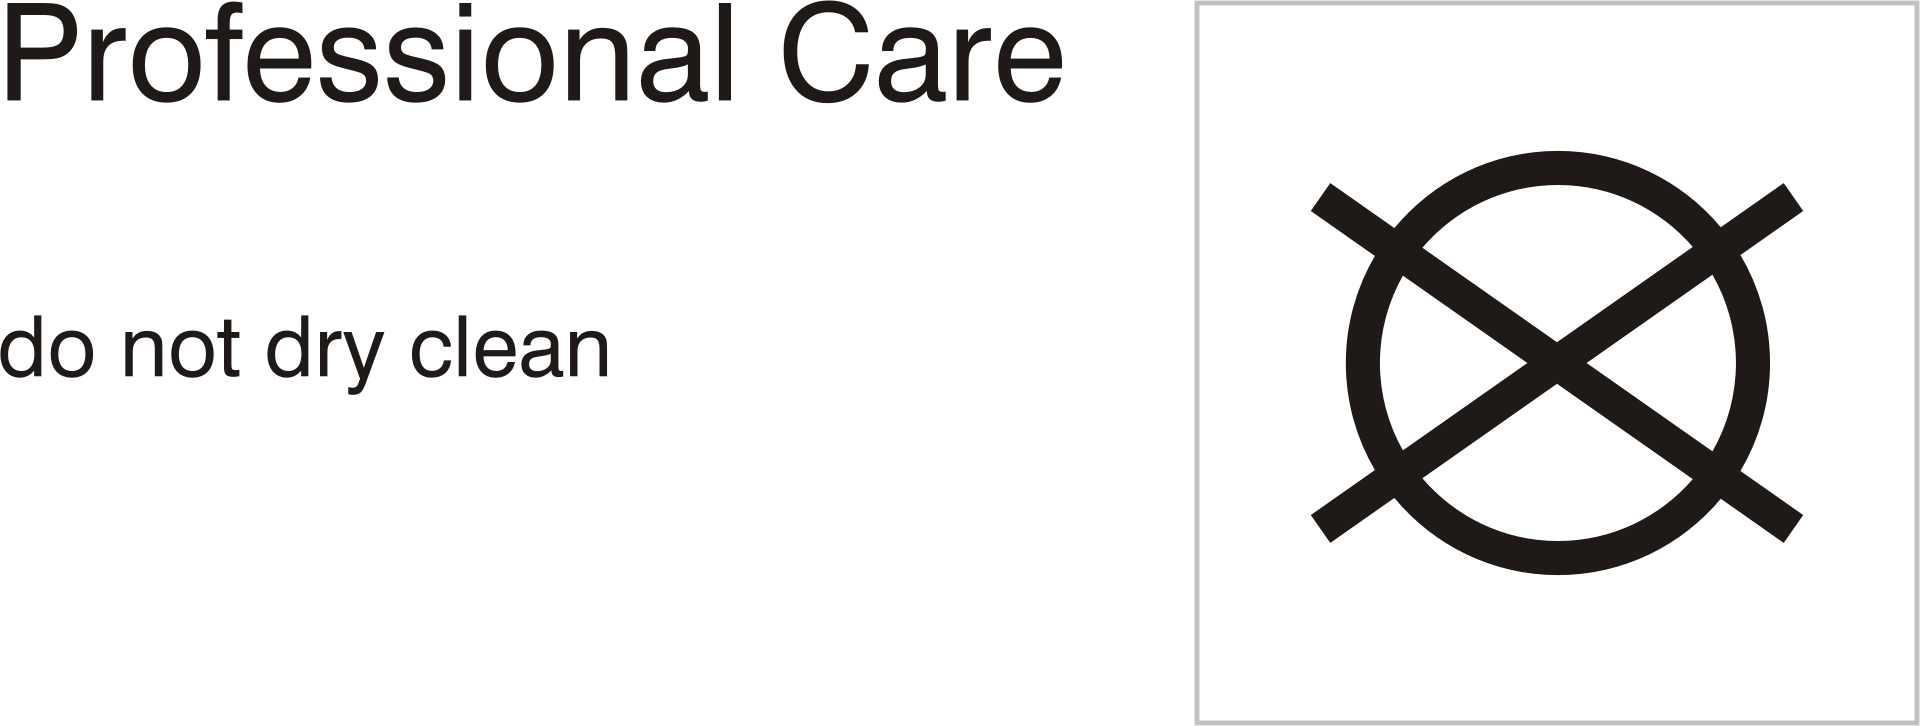 Clipart Care Symbols Professional Care Do Not Dry Clean